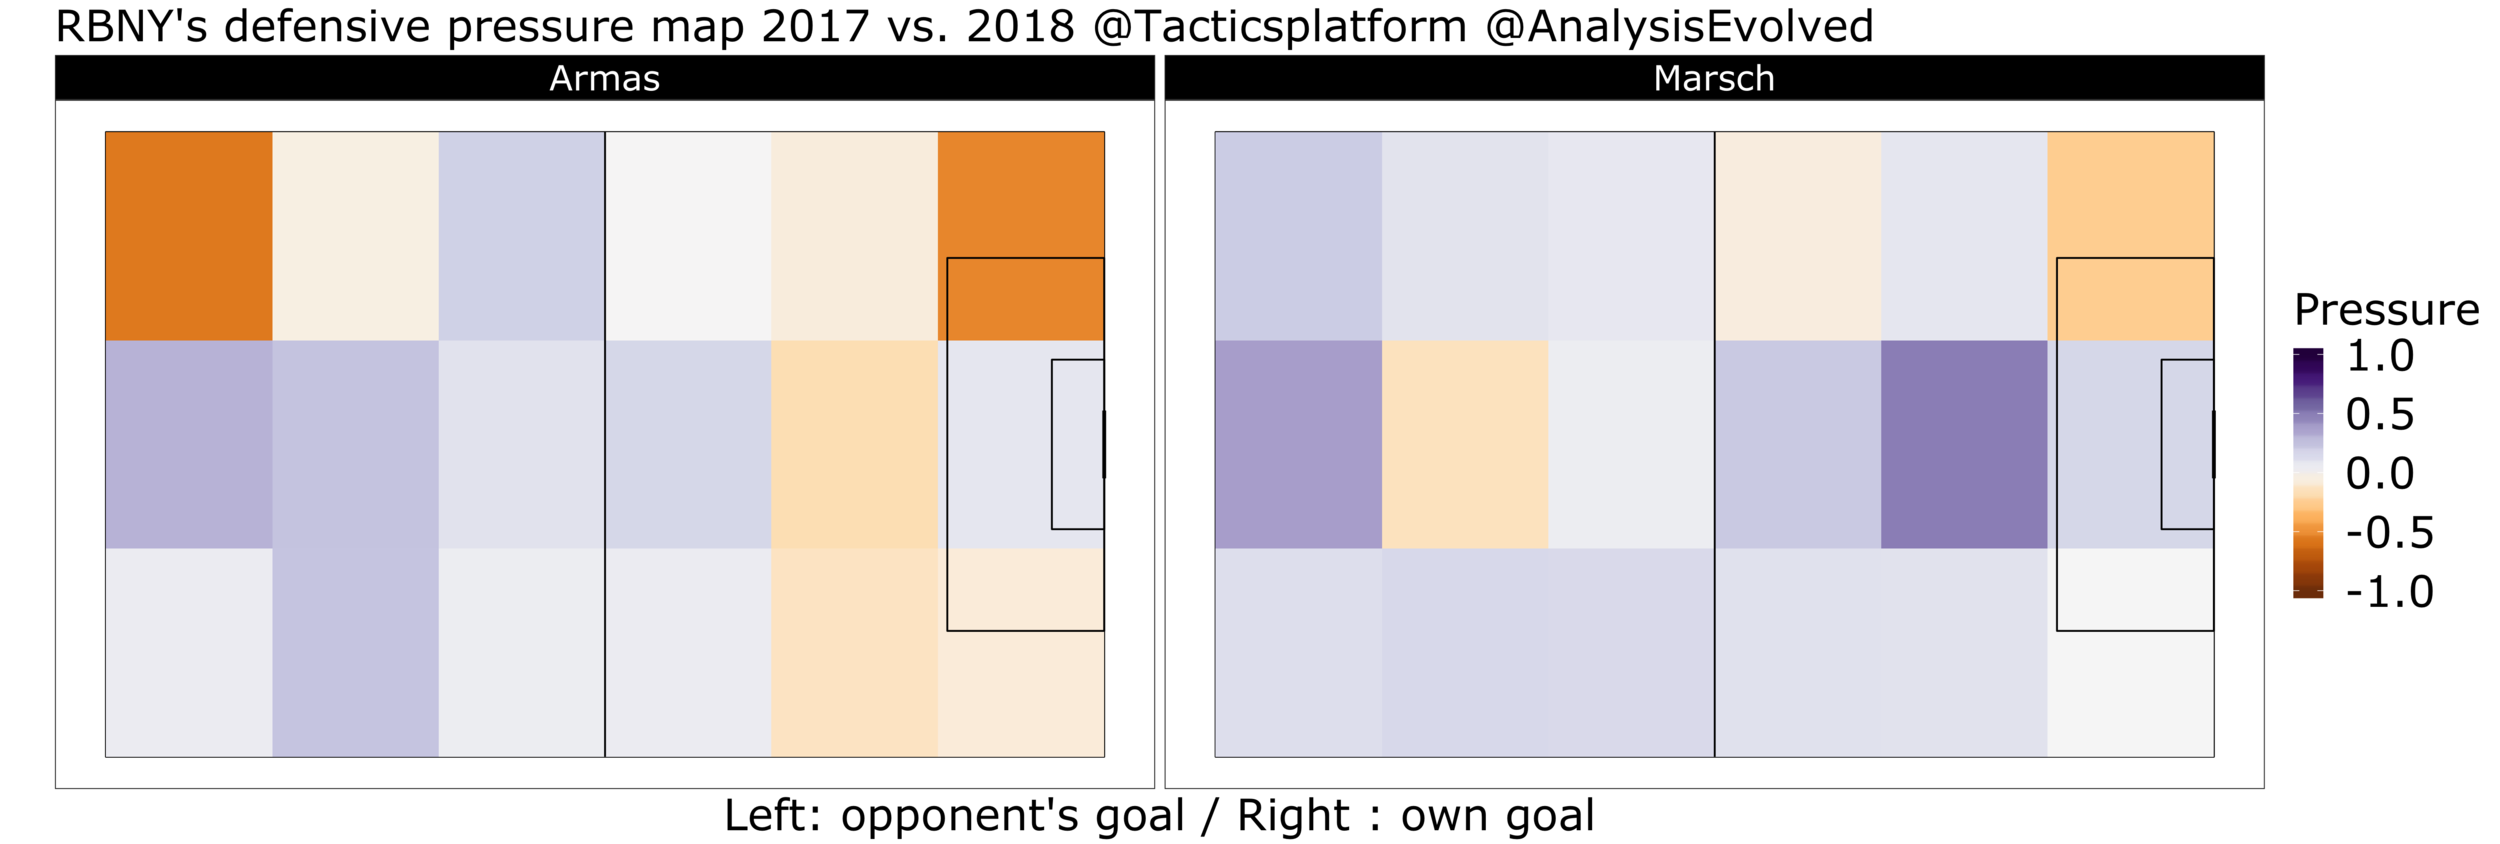 This heatmap shows the Red Bulls' defensive pressure under Armas and Marsch. The defensive pressure is calculated by 1 - opponent's touch (dribble, pass, shot) normalized by the league's average defensive pressure for each zone.